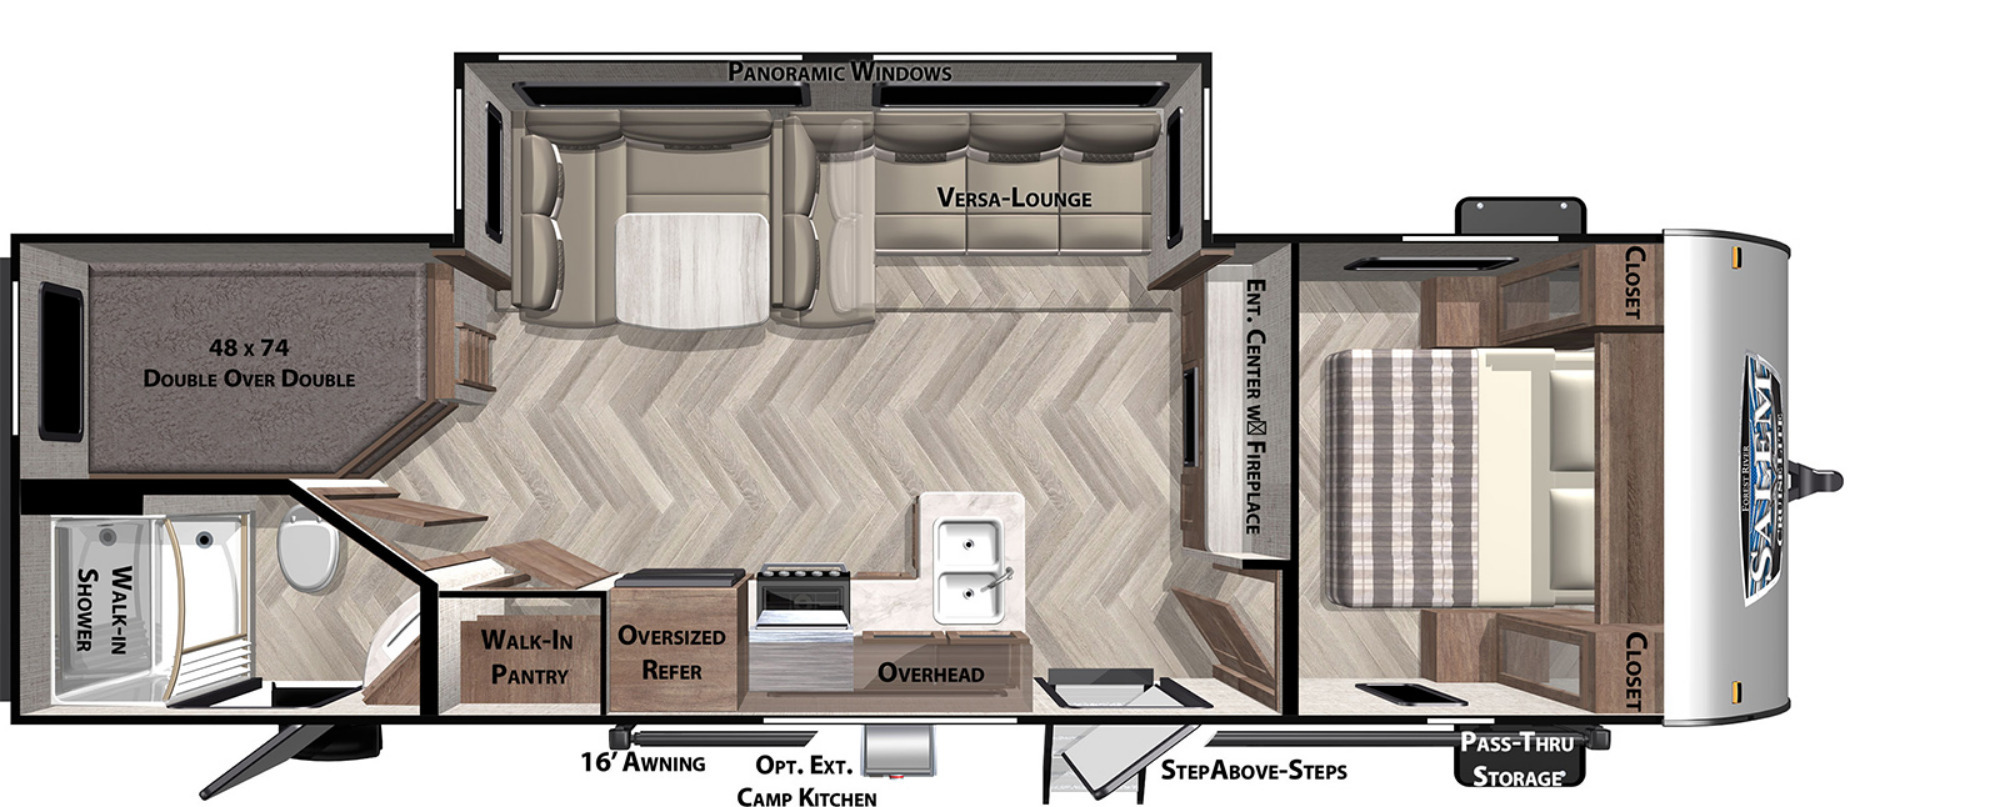 View Floor Plan for 2022 FOREST RIVER SALEM CRUISE LITE 263BHXL